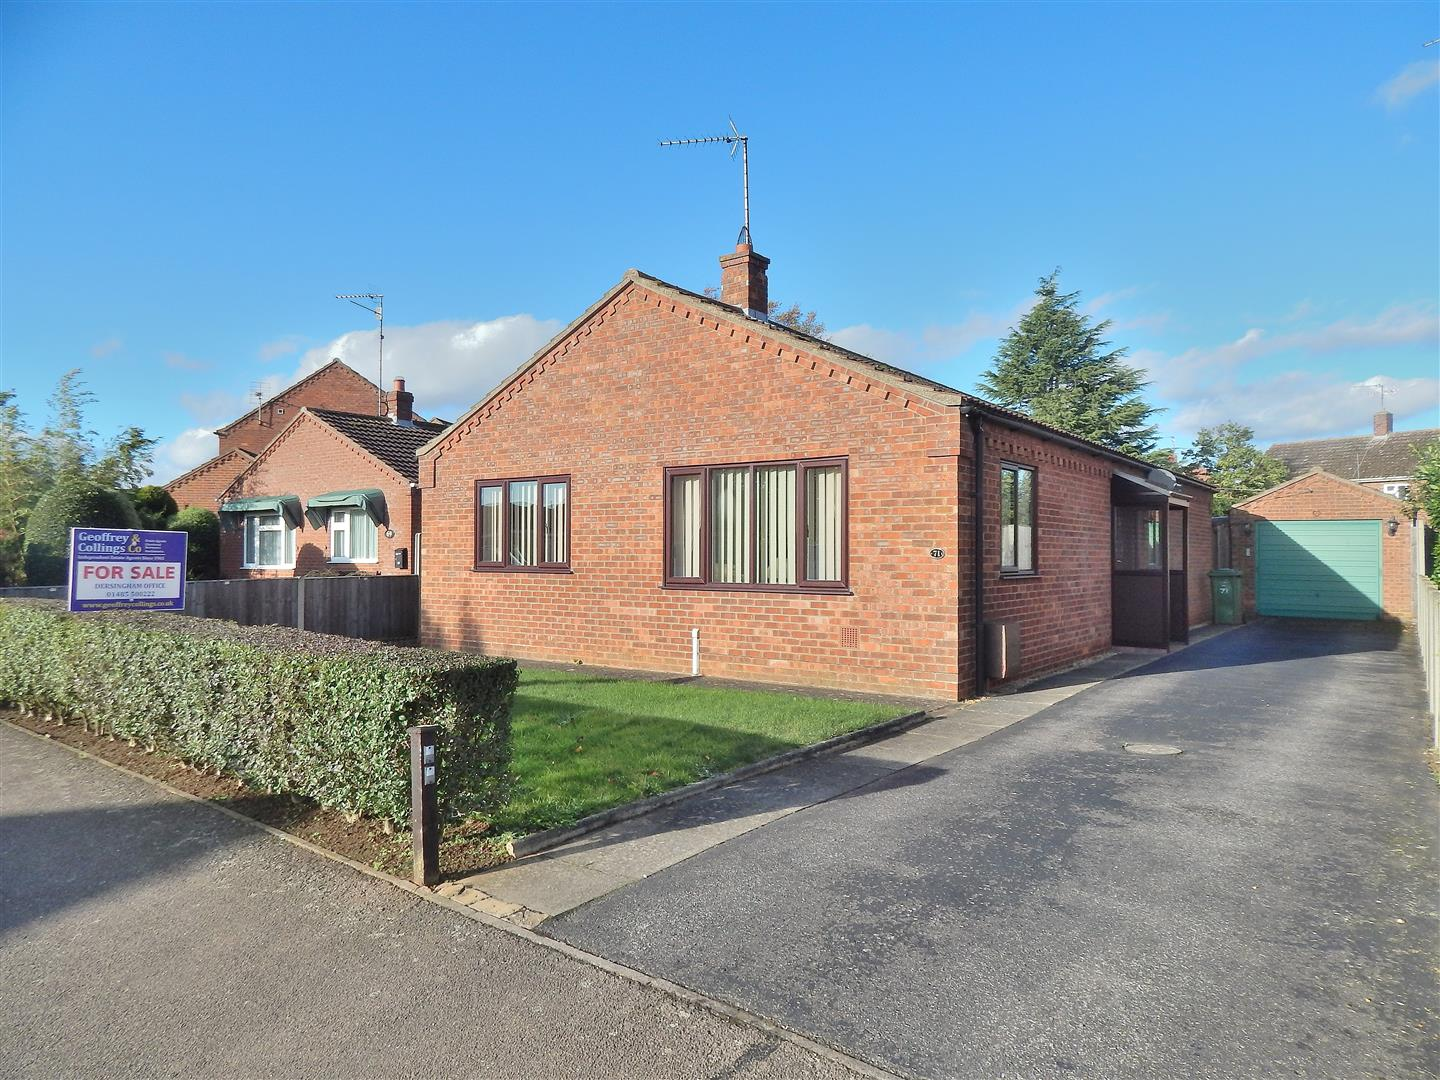 3 bed detached bungalow for sale in King's Lynn, PE31 6YE - Property Image 1